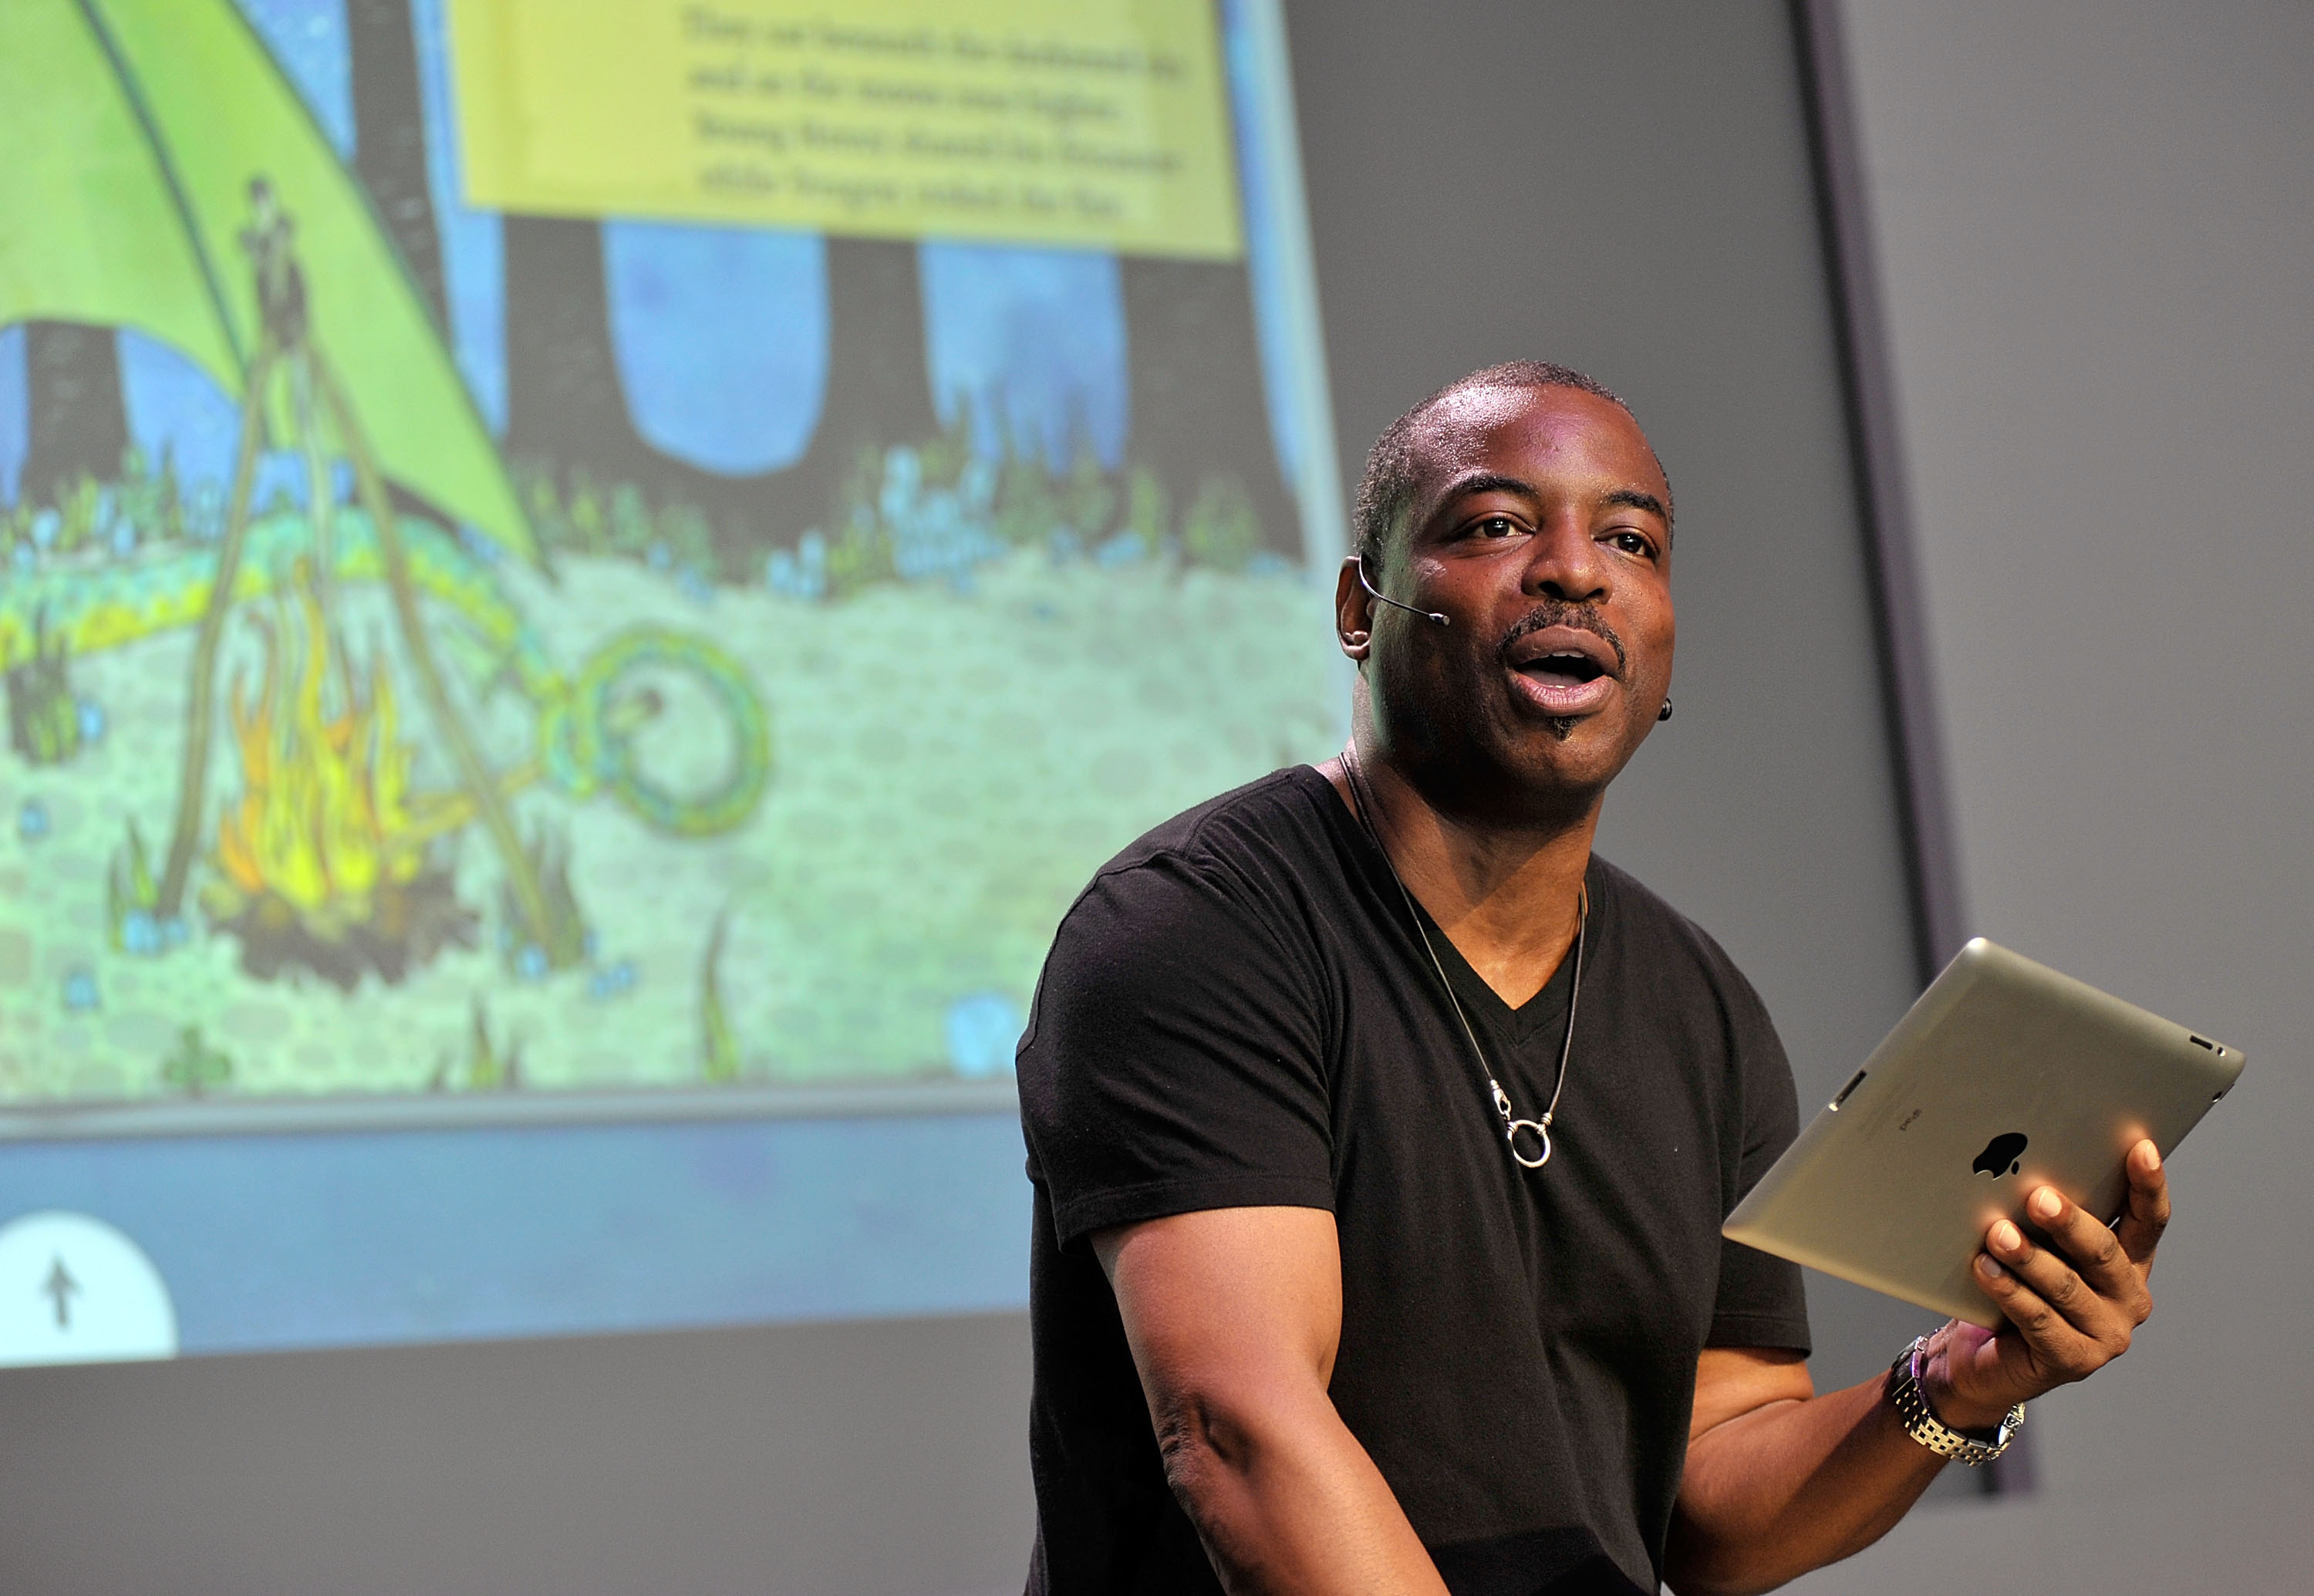 The Apple Store Soho Presents: Meet The Host: LeVar Burton,''Reading Rainbow'